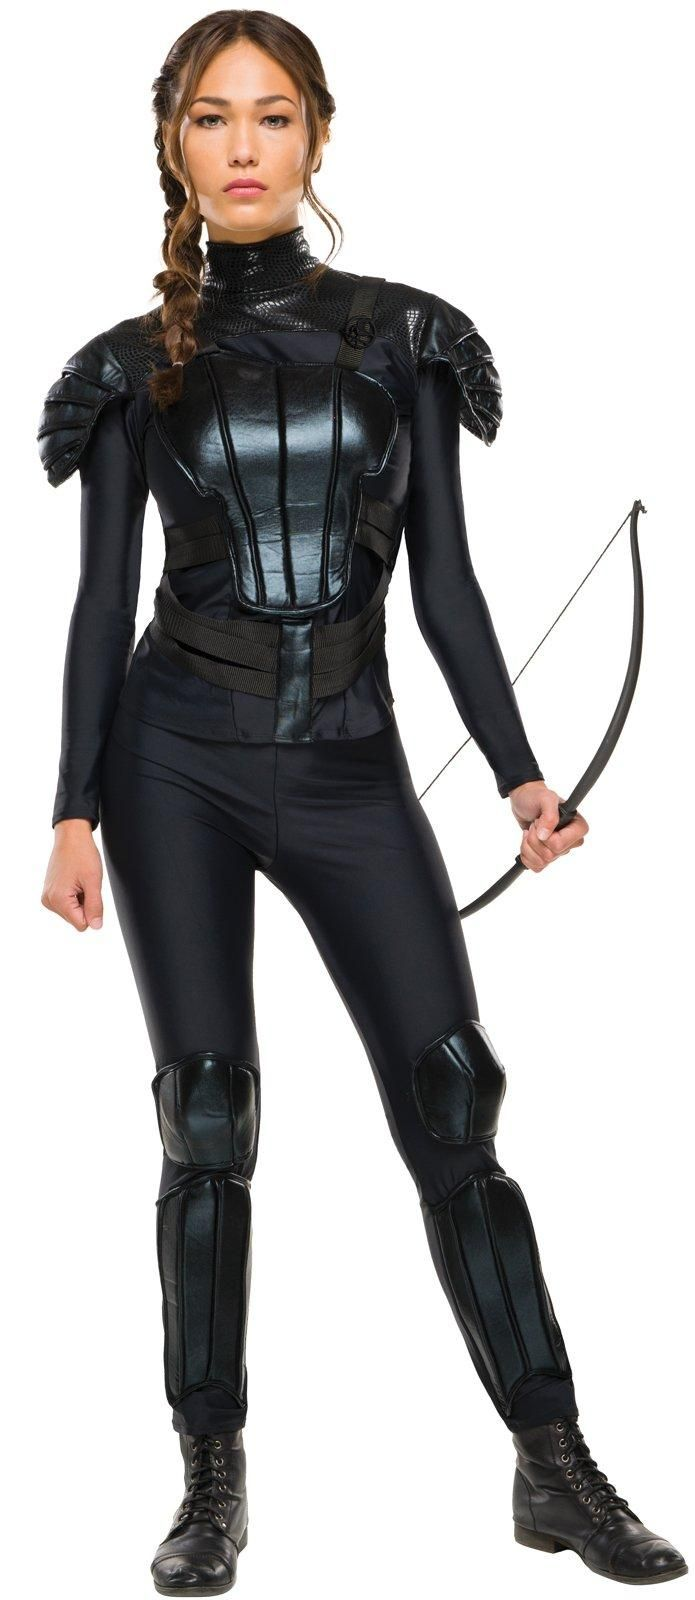 The hunger games mockingjay part 2 deluxe womens katniss costume the hunger games mockingjay part 1 deluxe womens katniss costume from buycostumes solutioingenieria Gallery